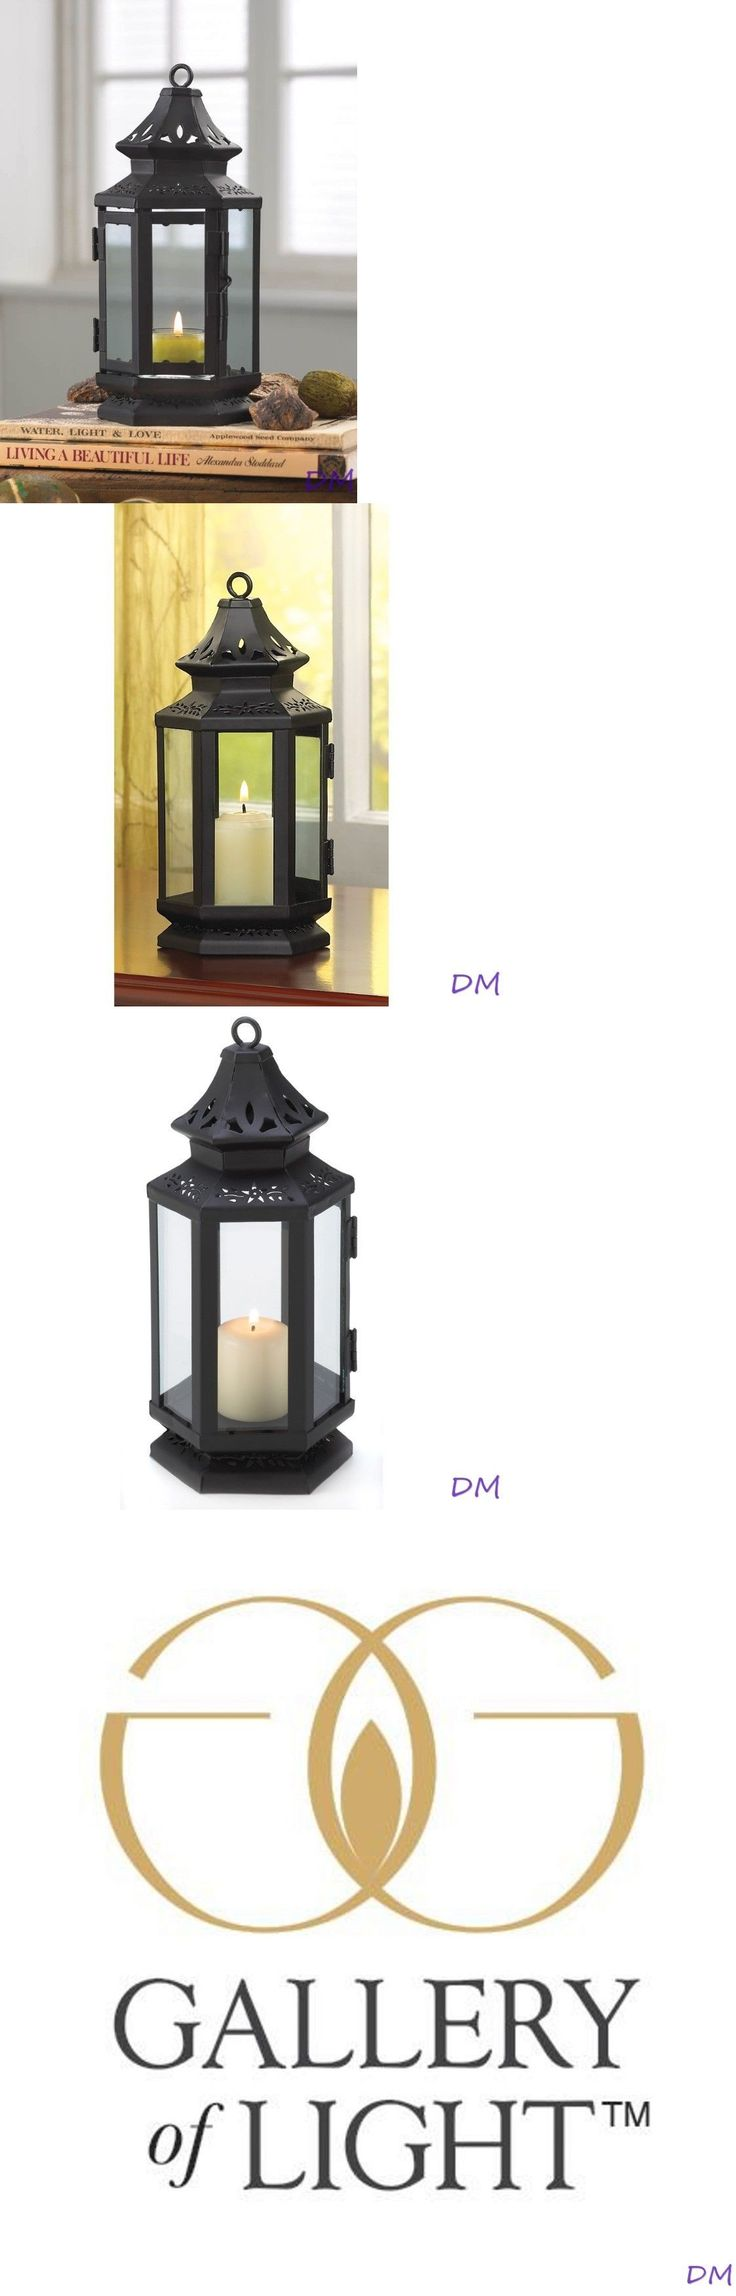 Candles and Candle Holders 20936: Lot Of 20 Black Stagecoach Style Lanterns Wedding Centerpieces Old West Decor -> BUY IT NOW ONLY: $169.95 on eBay!